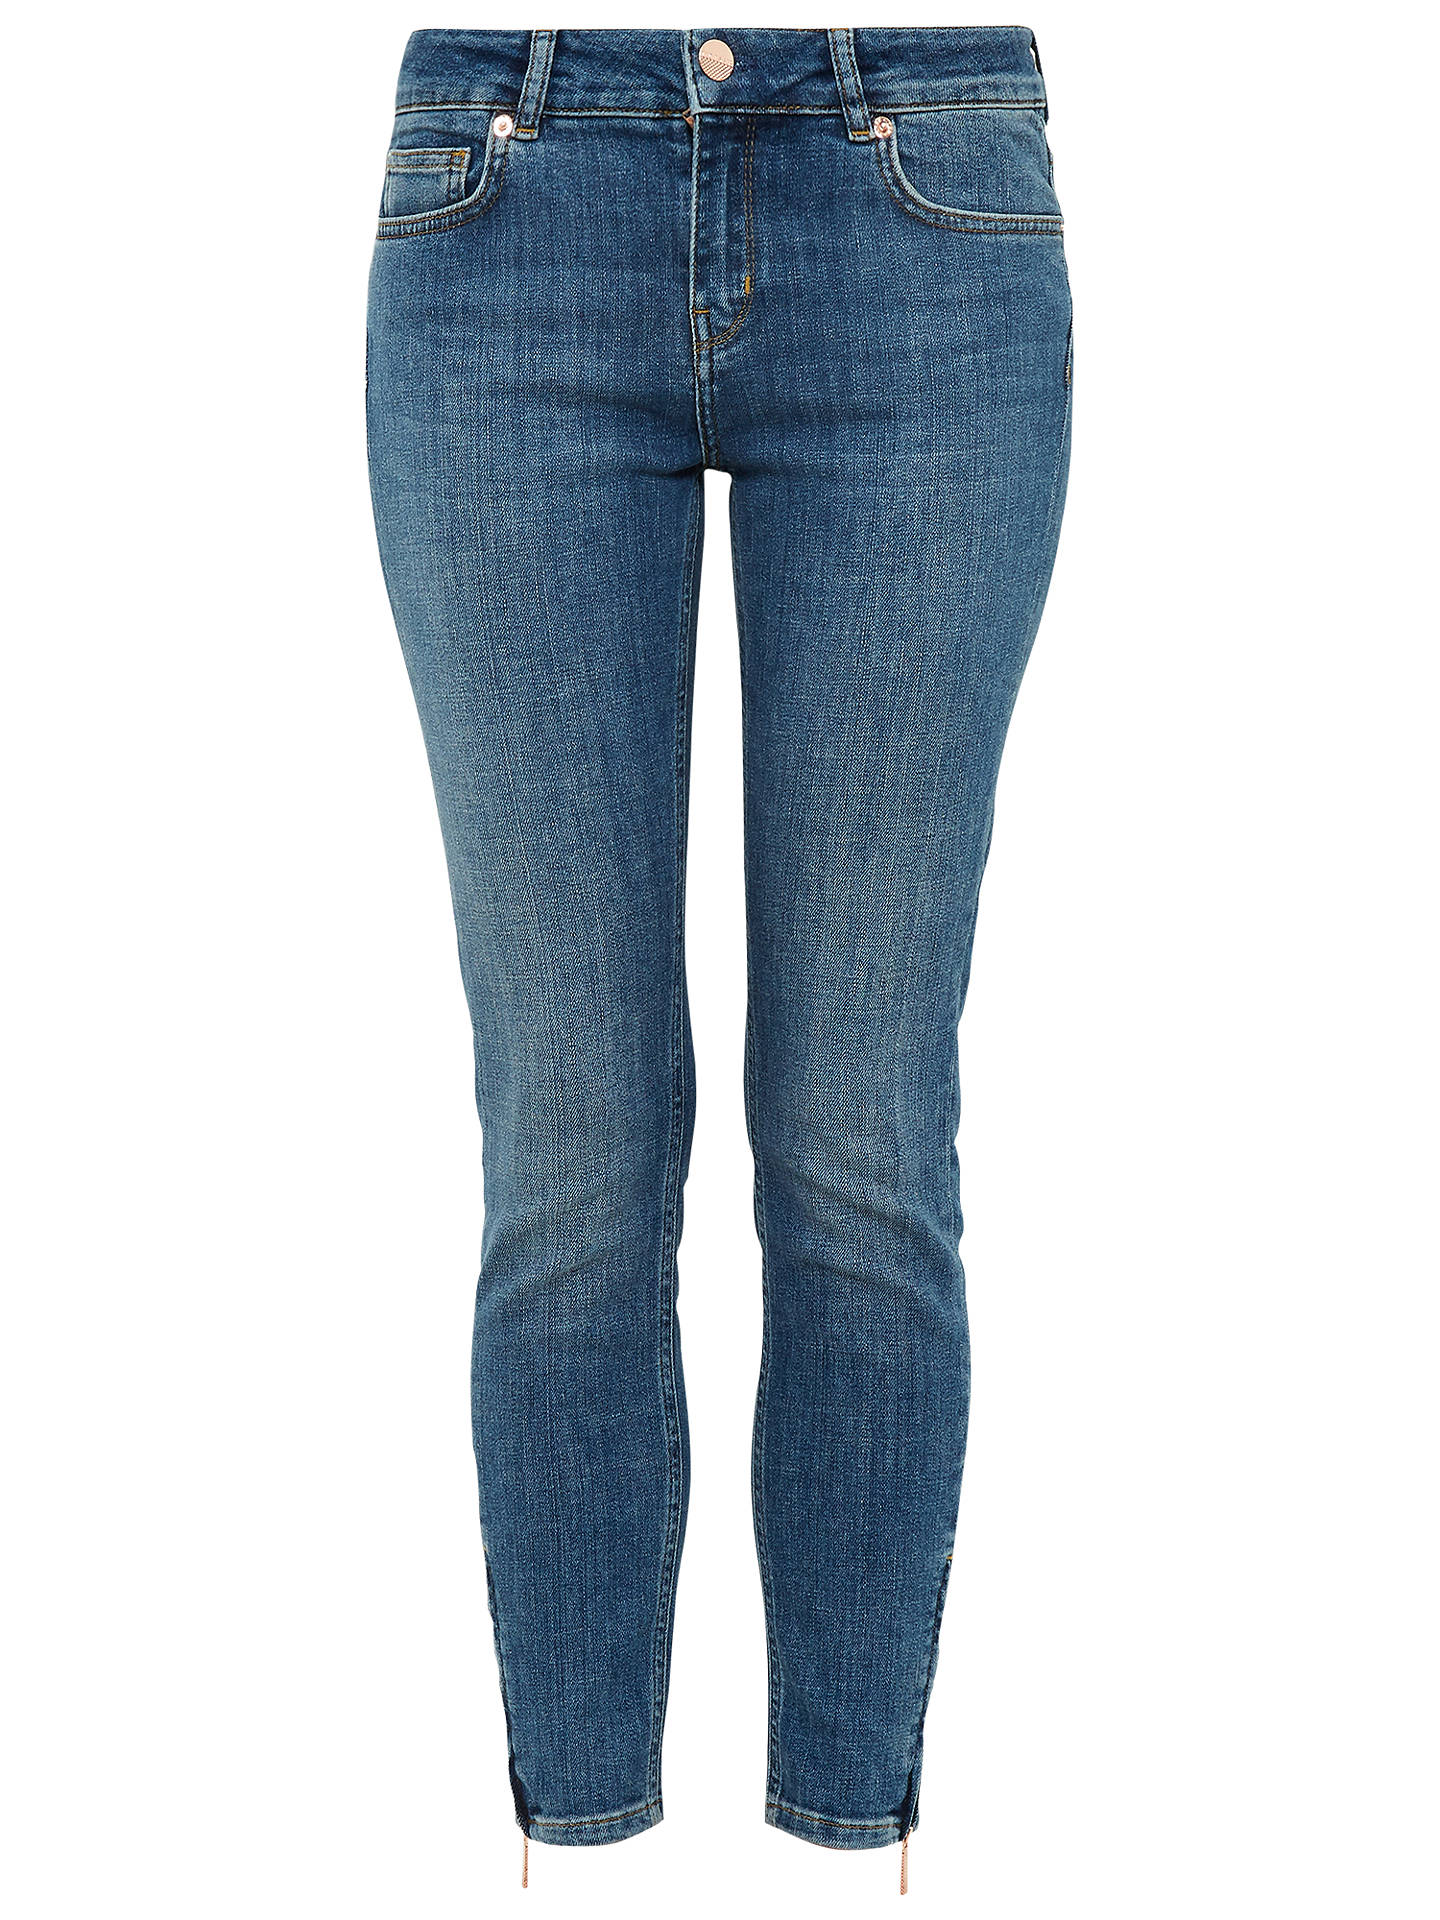 2629aef58 Buy Ted Baker Lallita Mid Wash Skinny Jeans